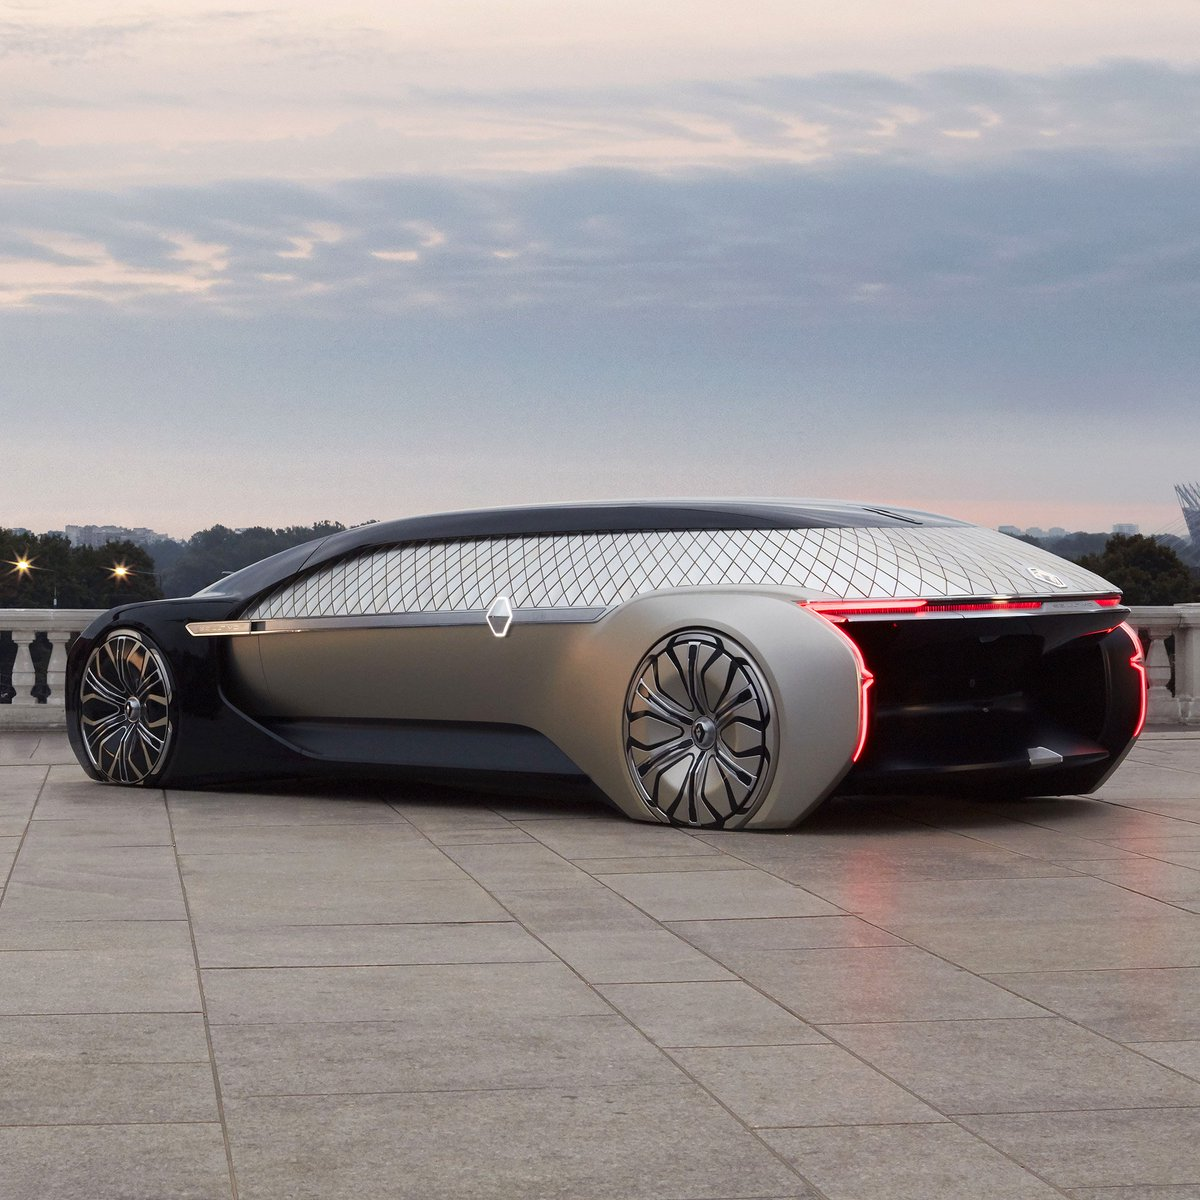 Take a look inside Renaults EZ-ULTIMO concept, which has no space for a driver at all